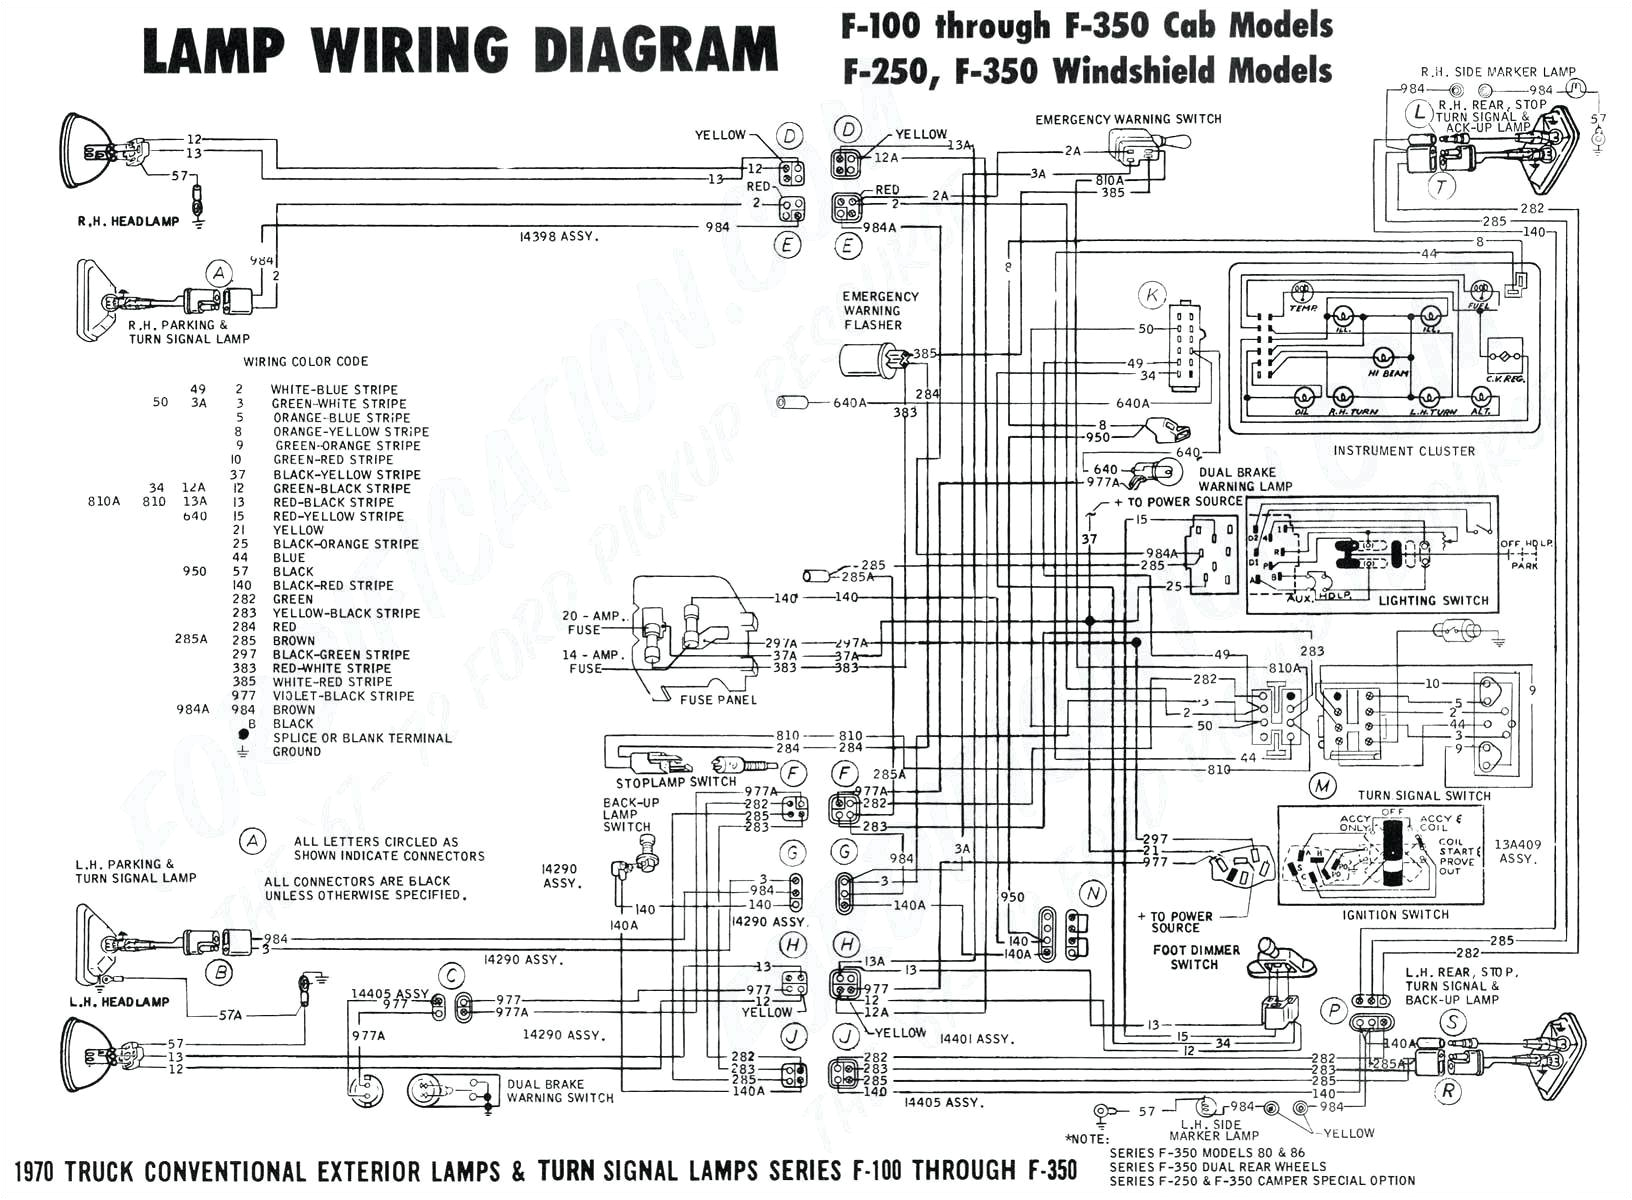 2002 ford Explorer Sport Trac Wiring Diagram 2001 ford Explorer Sport Trac Fuse Panel Diagram Wiring Diagram Paper